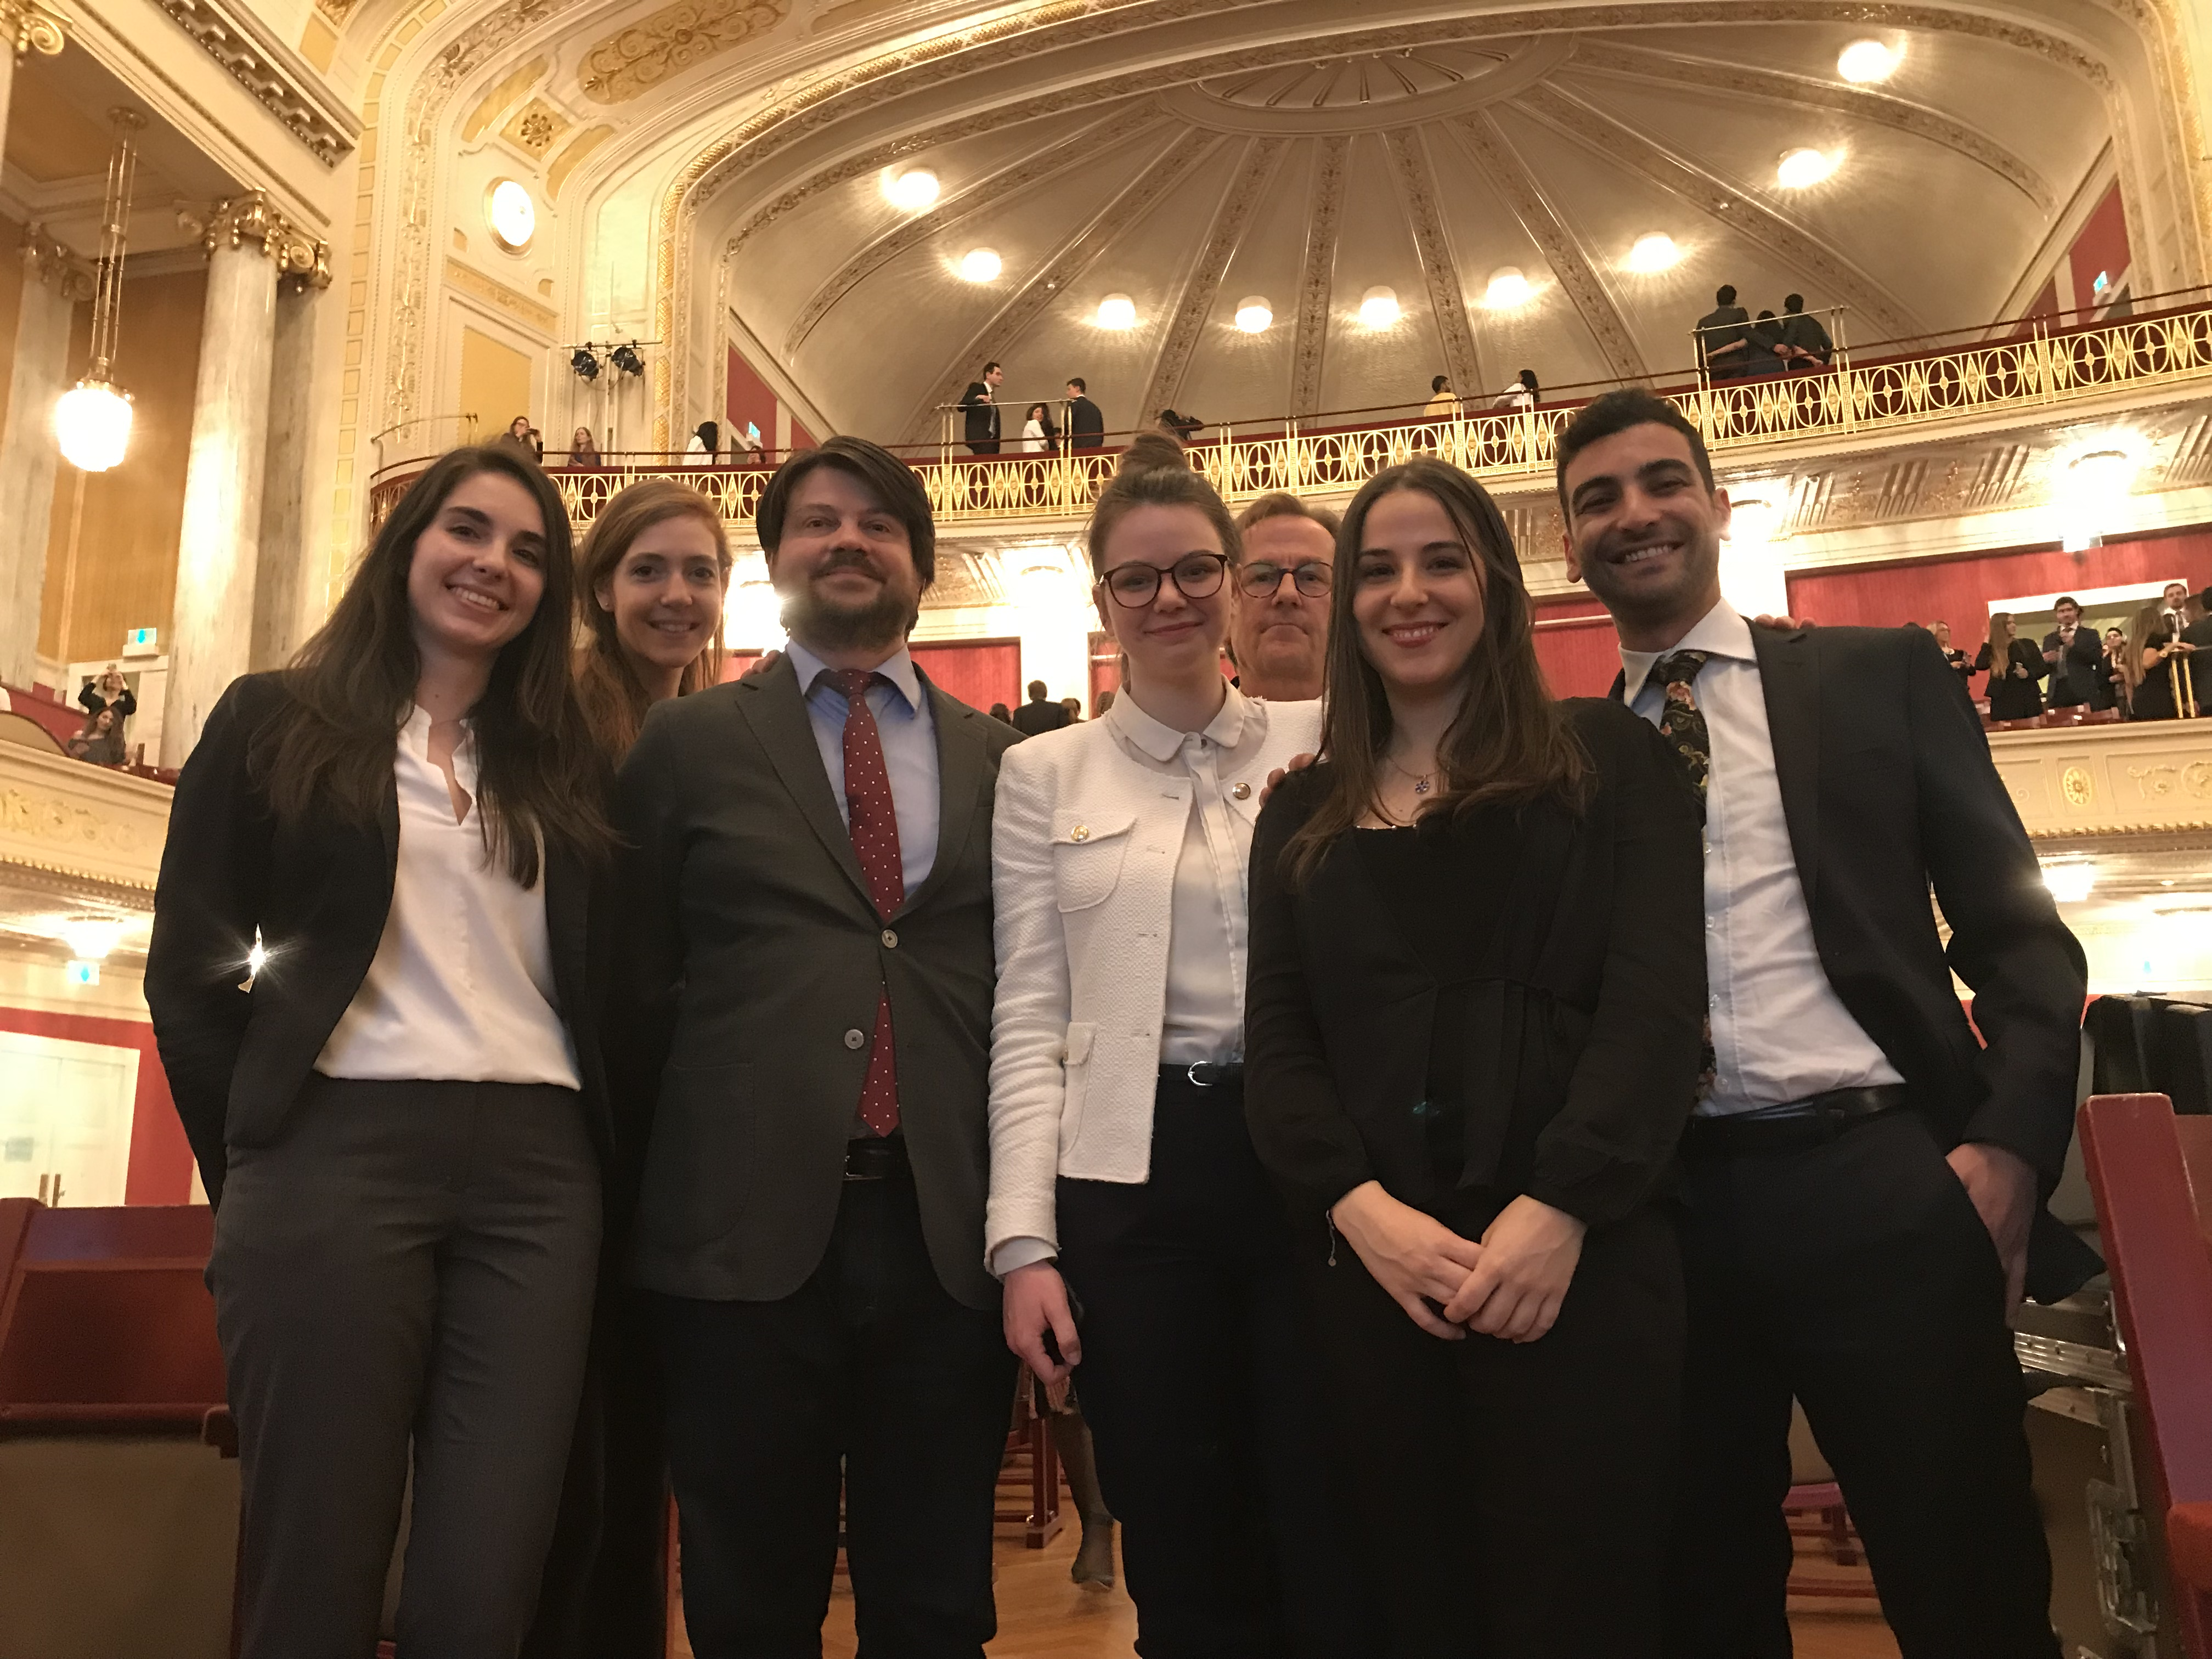 The 25th Annual Vis International Commercial Arbitration Moot in Vienna